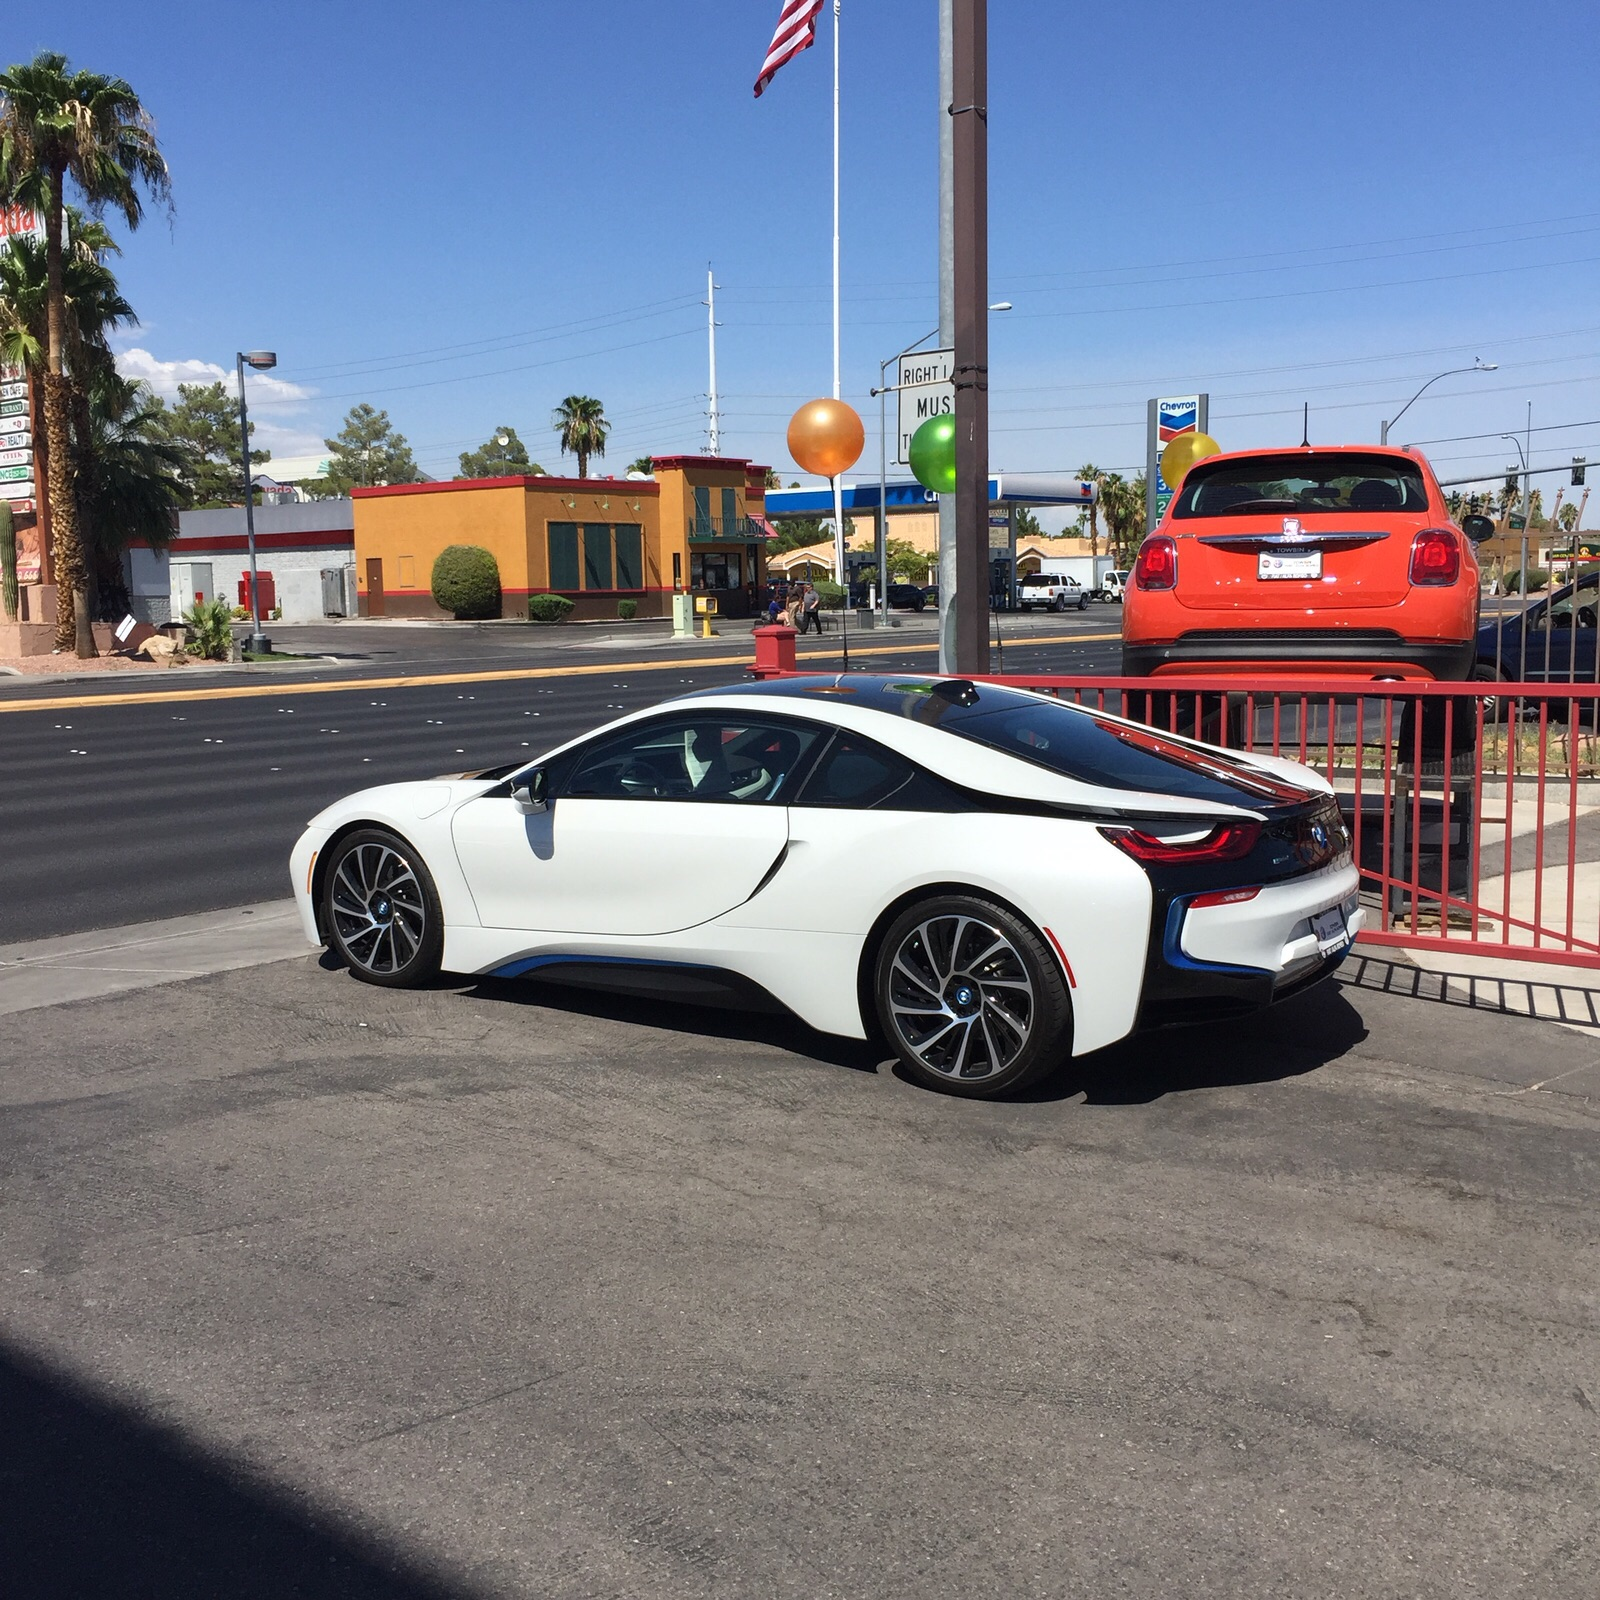 BMW I8: Brand New 2015 Model For Sale + Extras